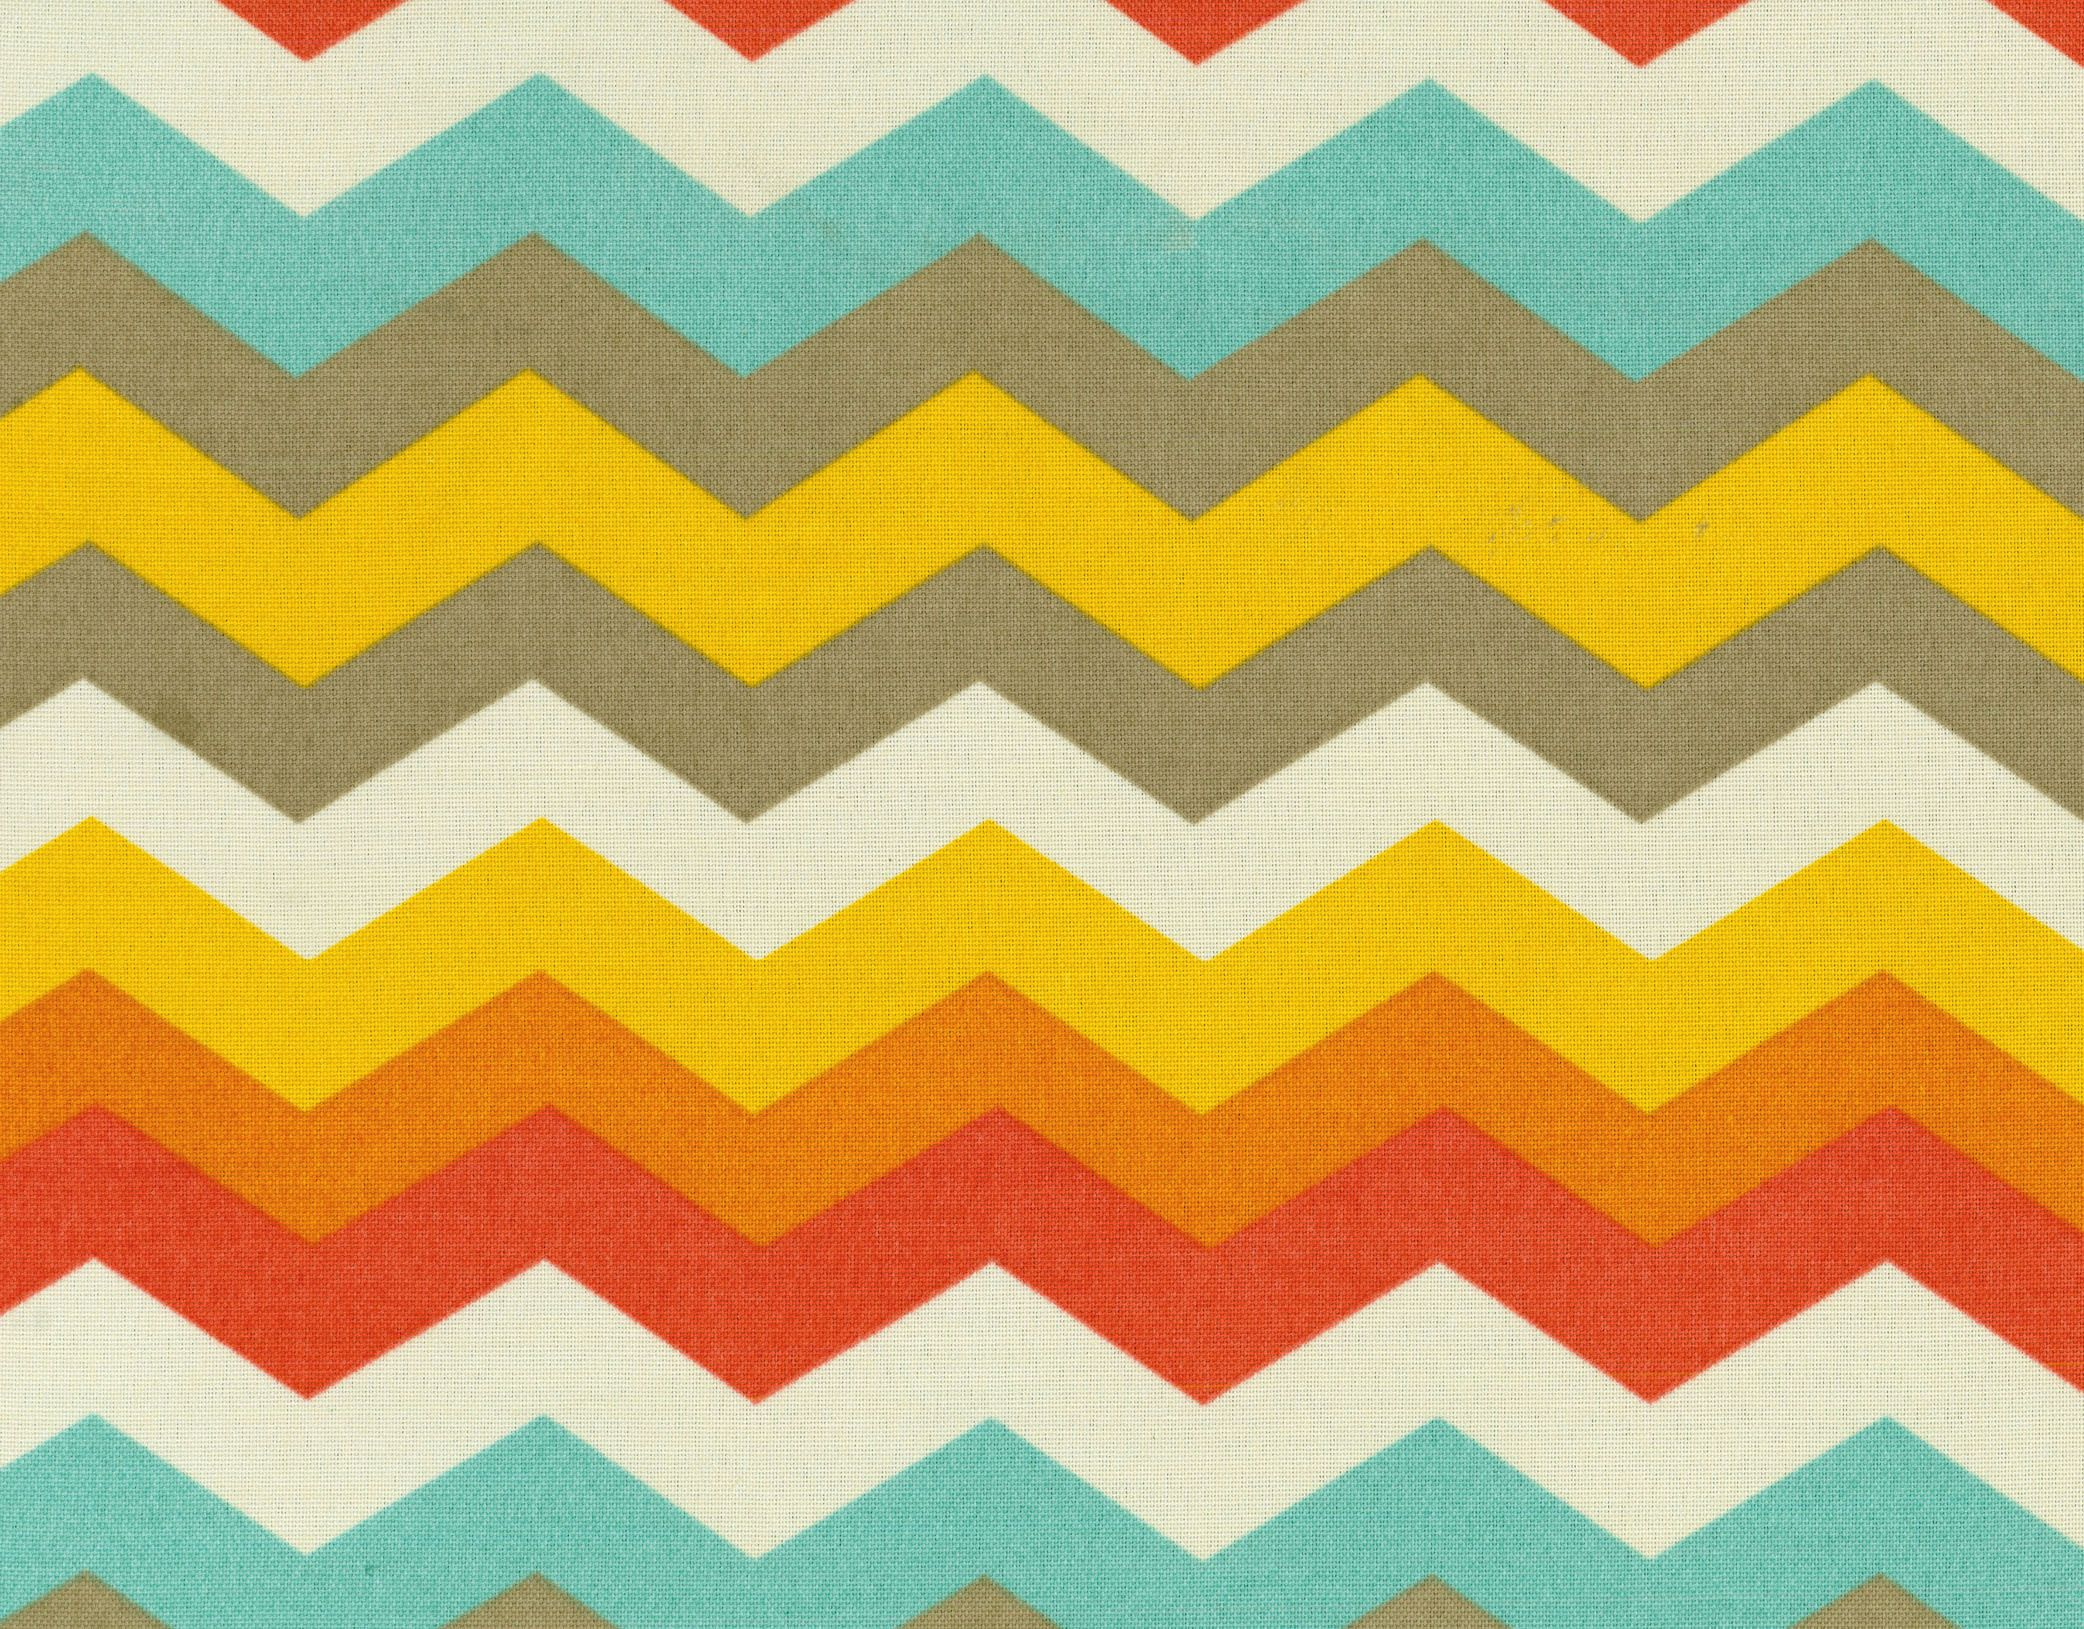 Shop For Outdoor Fabric Home Decor Fabric Products At Joann Com Outdoor Fabric Waverly Fabric Fabric Decor